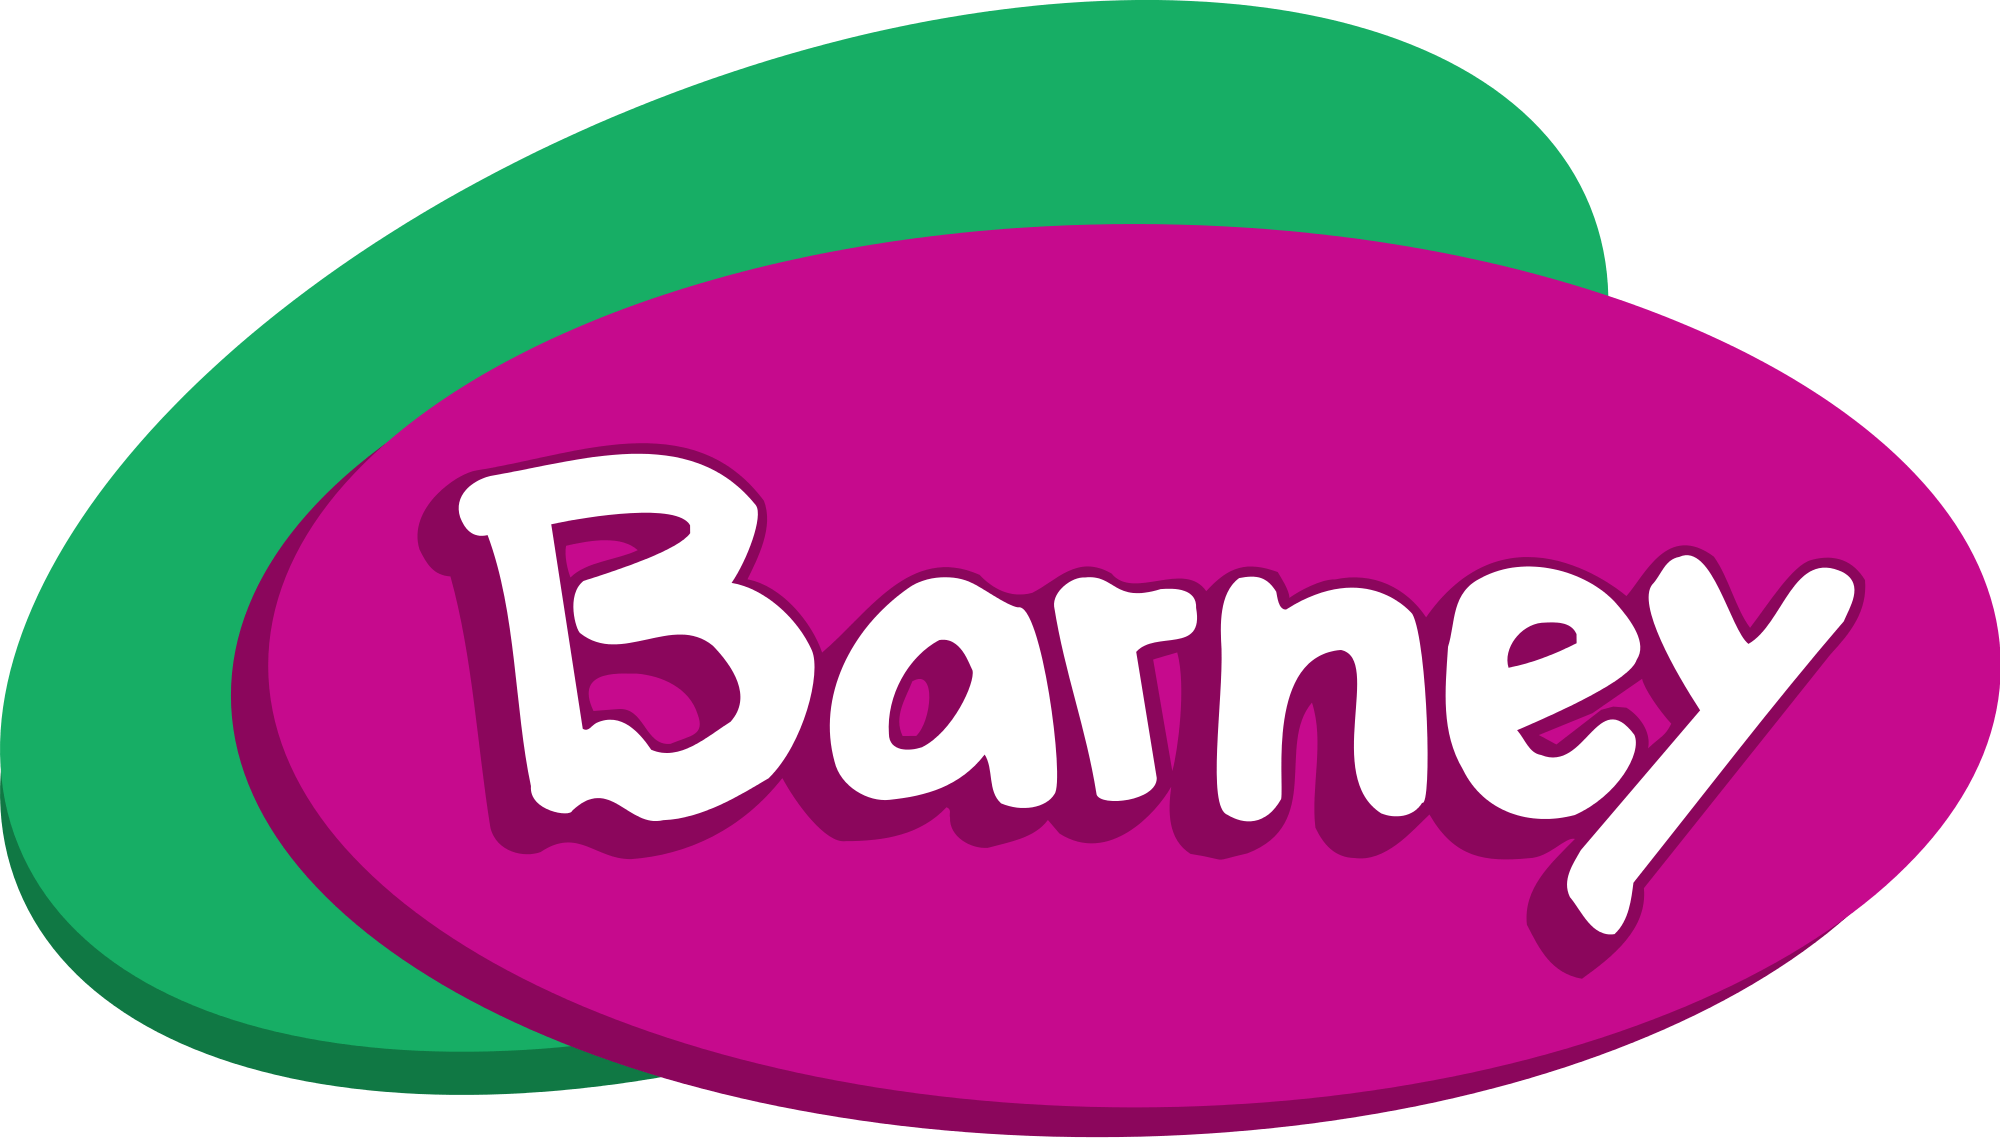 2000x1140 Barney And Friends Logo Transparent Png